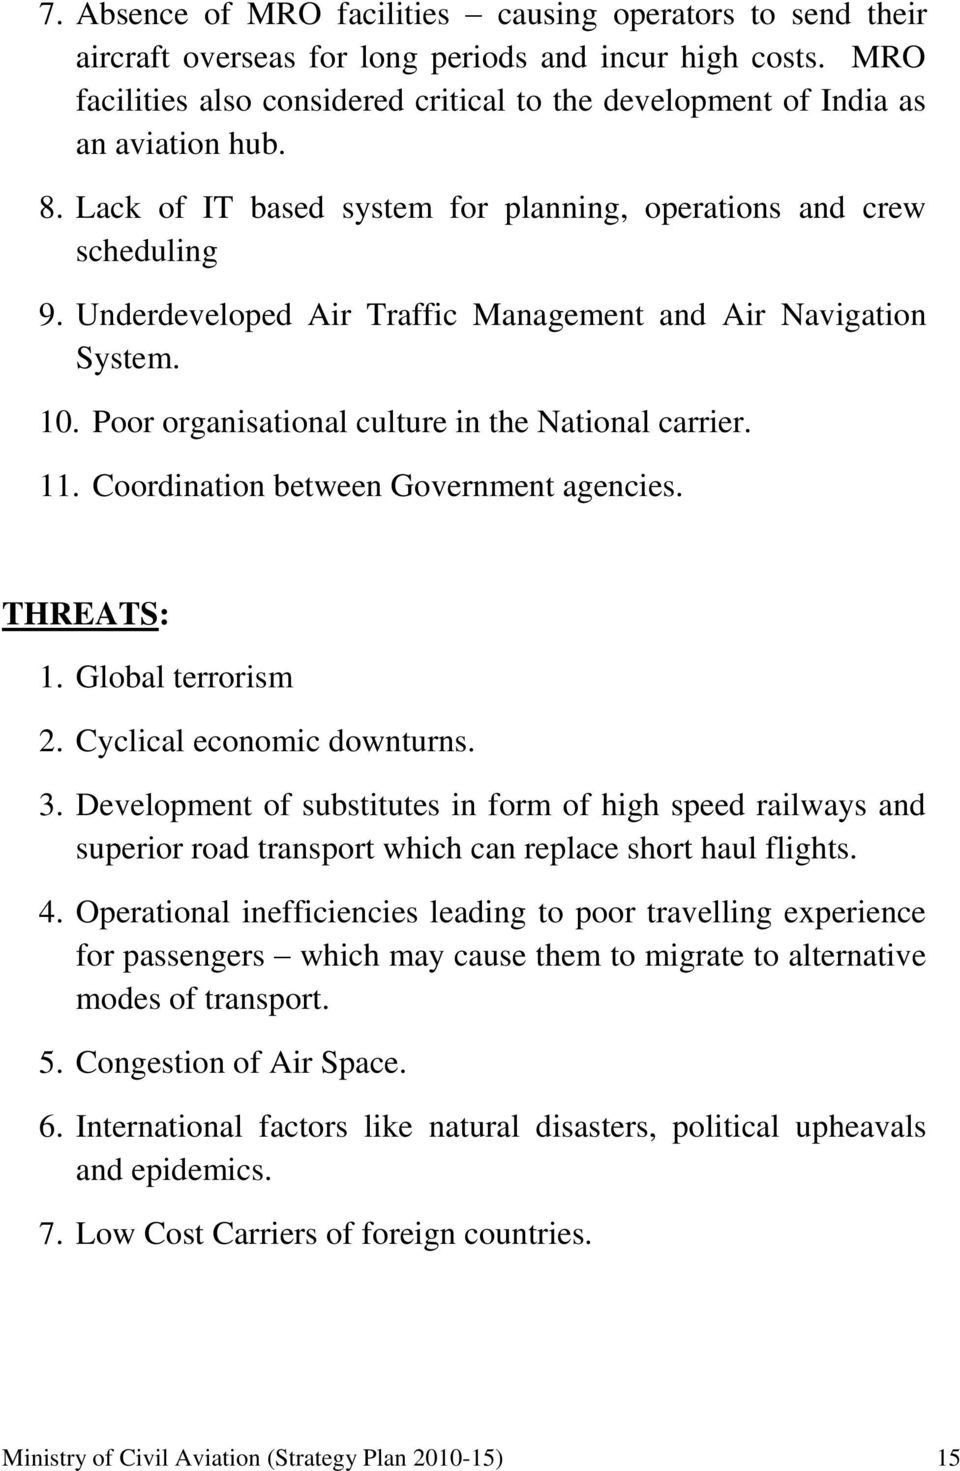 Underdeveloped Air Traffic Management and Air Navigation System. 10. Poor organisational culture in the National carrier. 11. Coordination between Government agencies. THREATS: 1. Global terrorism 2.